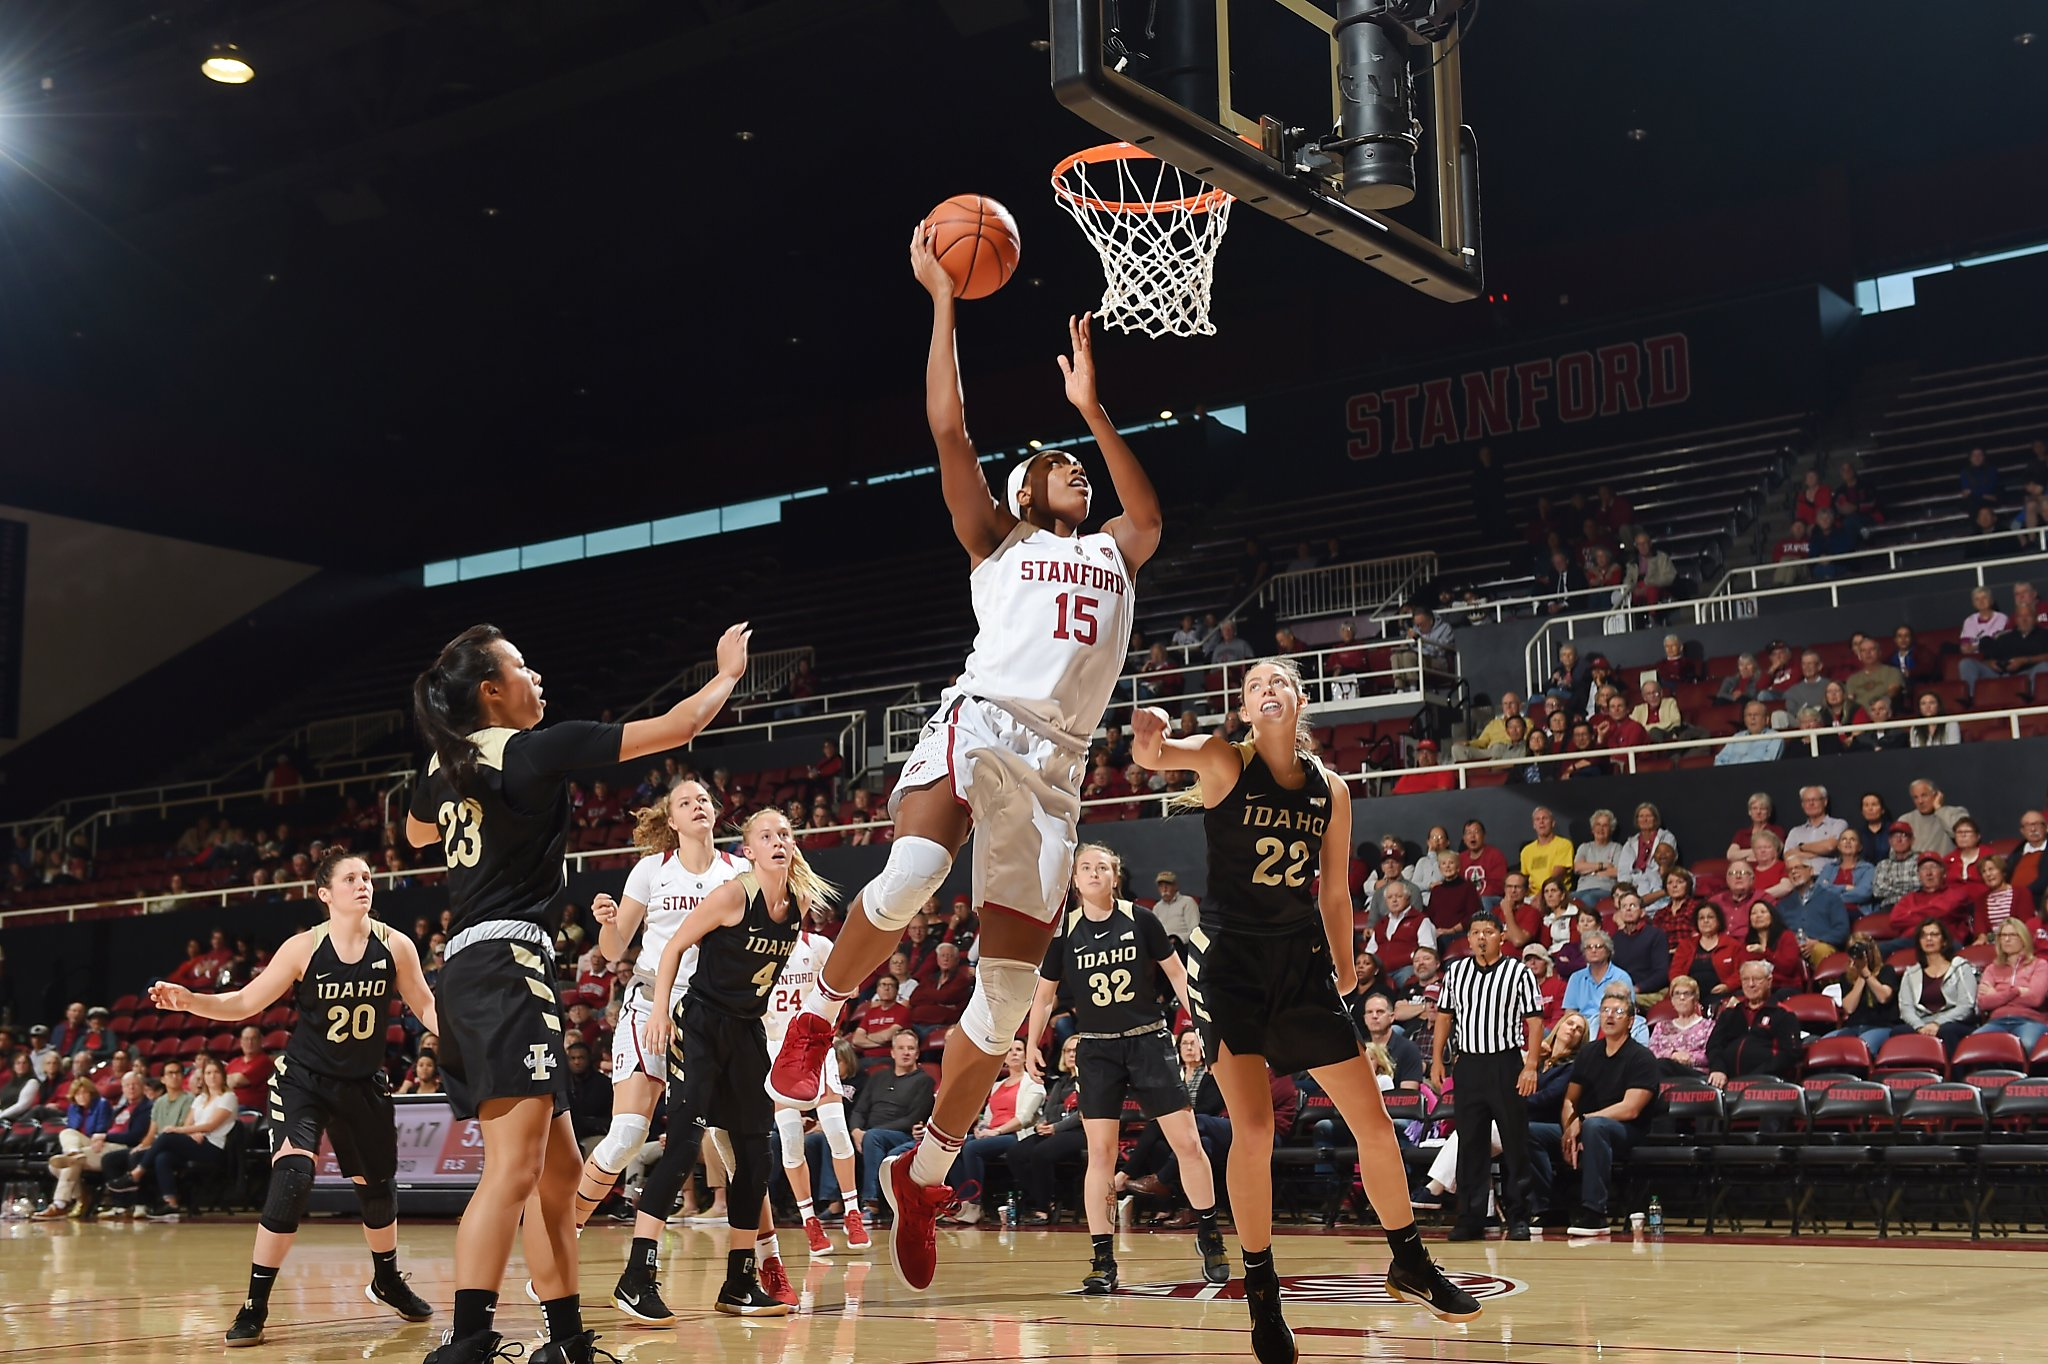 Women's basketball: No. 7 Stanford, No. 24 Cal cruise to victories - SFGate